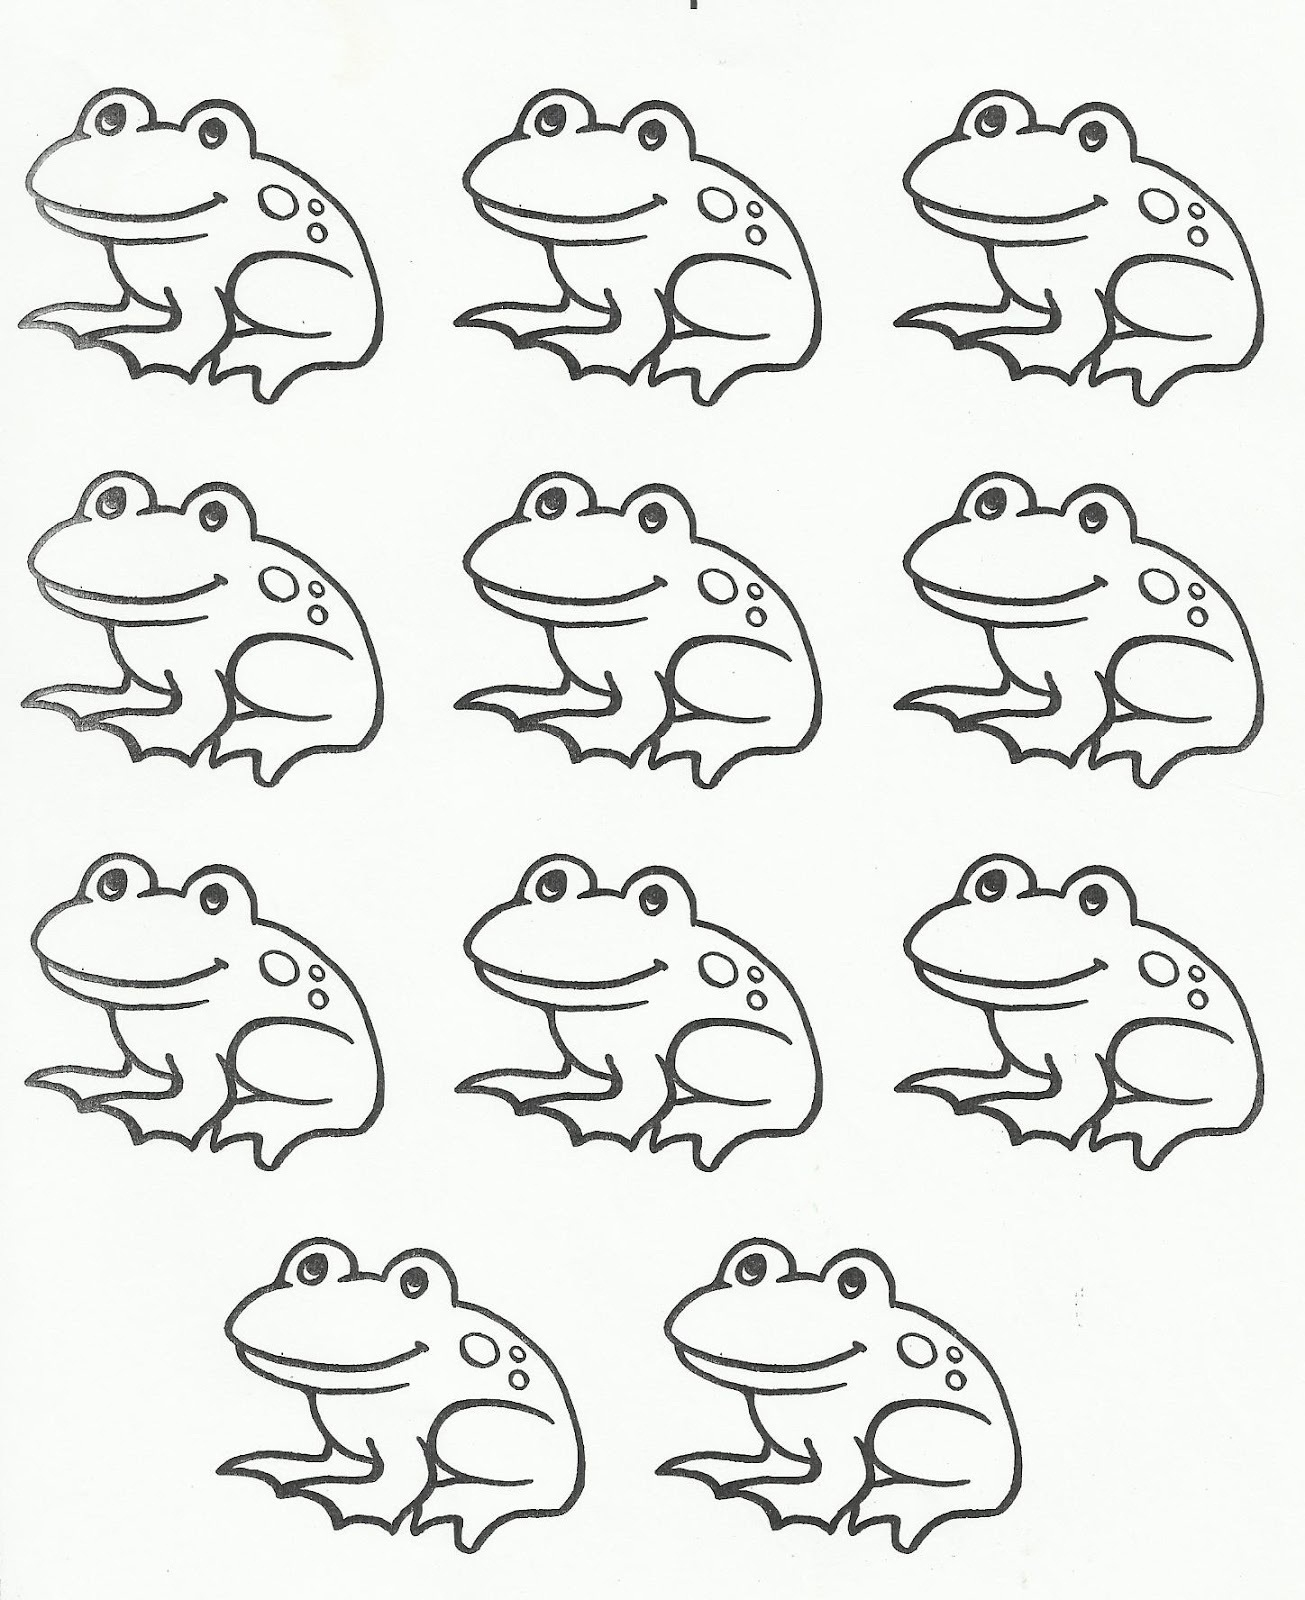 frog-activities-for-kids-printable